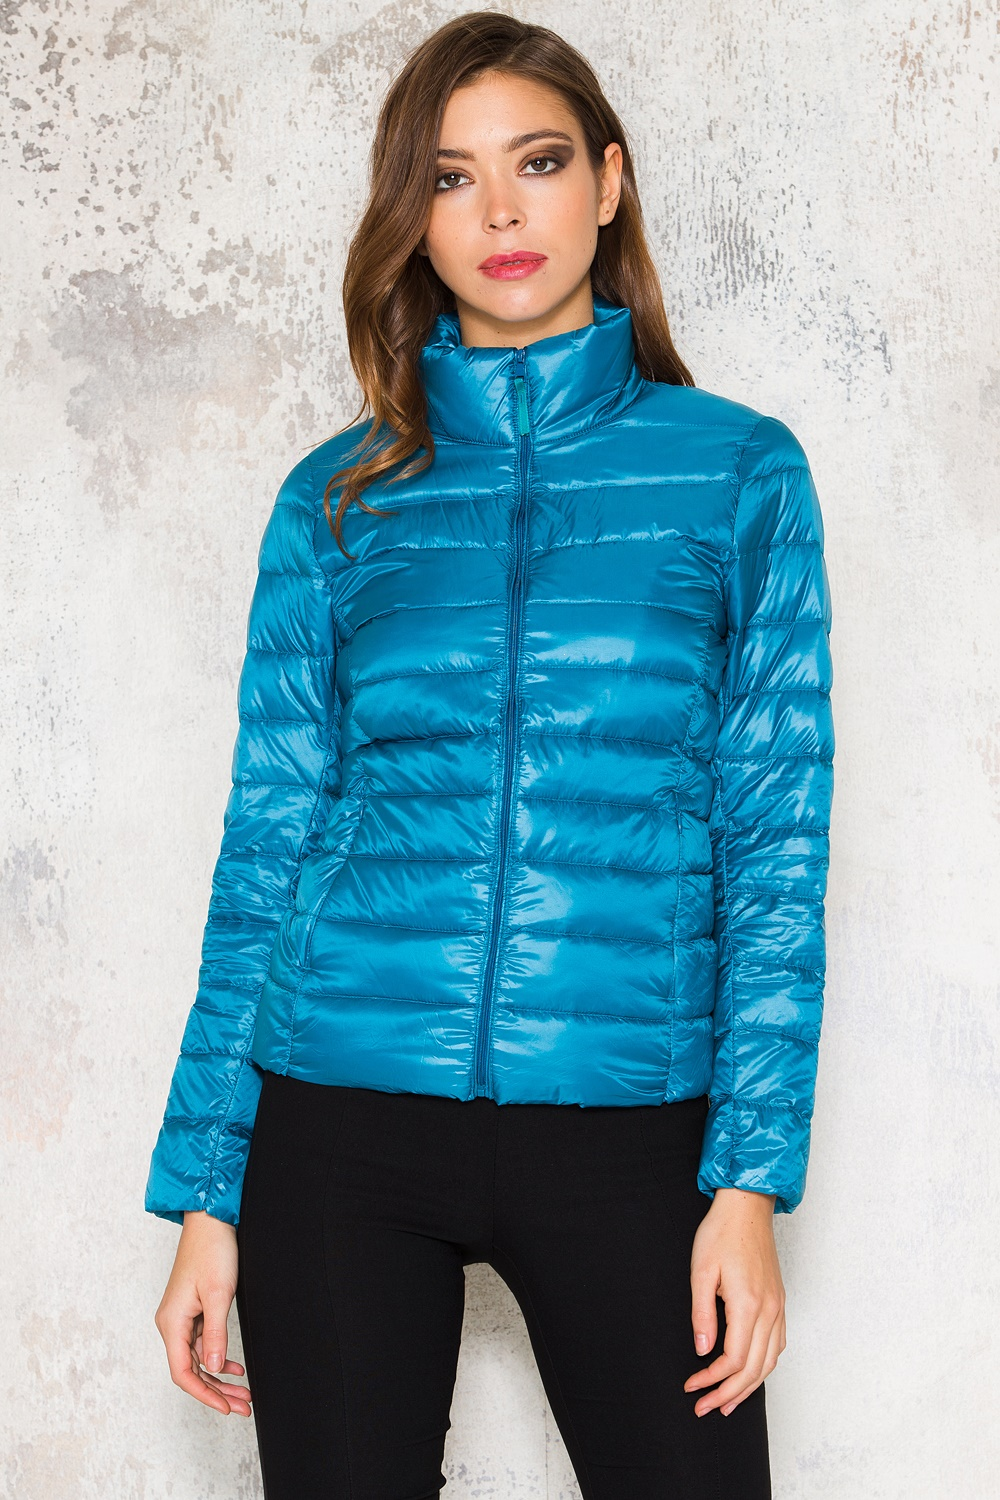 Super Light Jacket - Ocean Blue